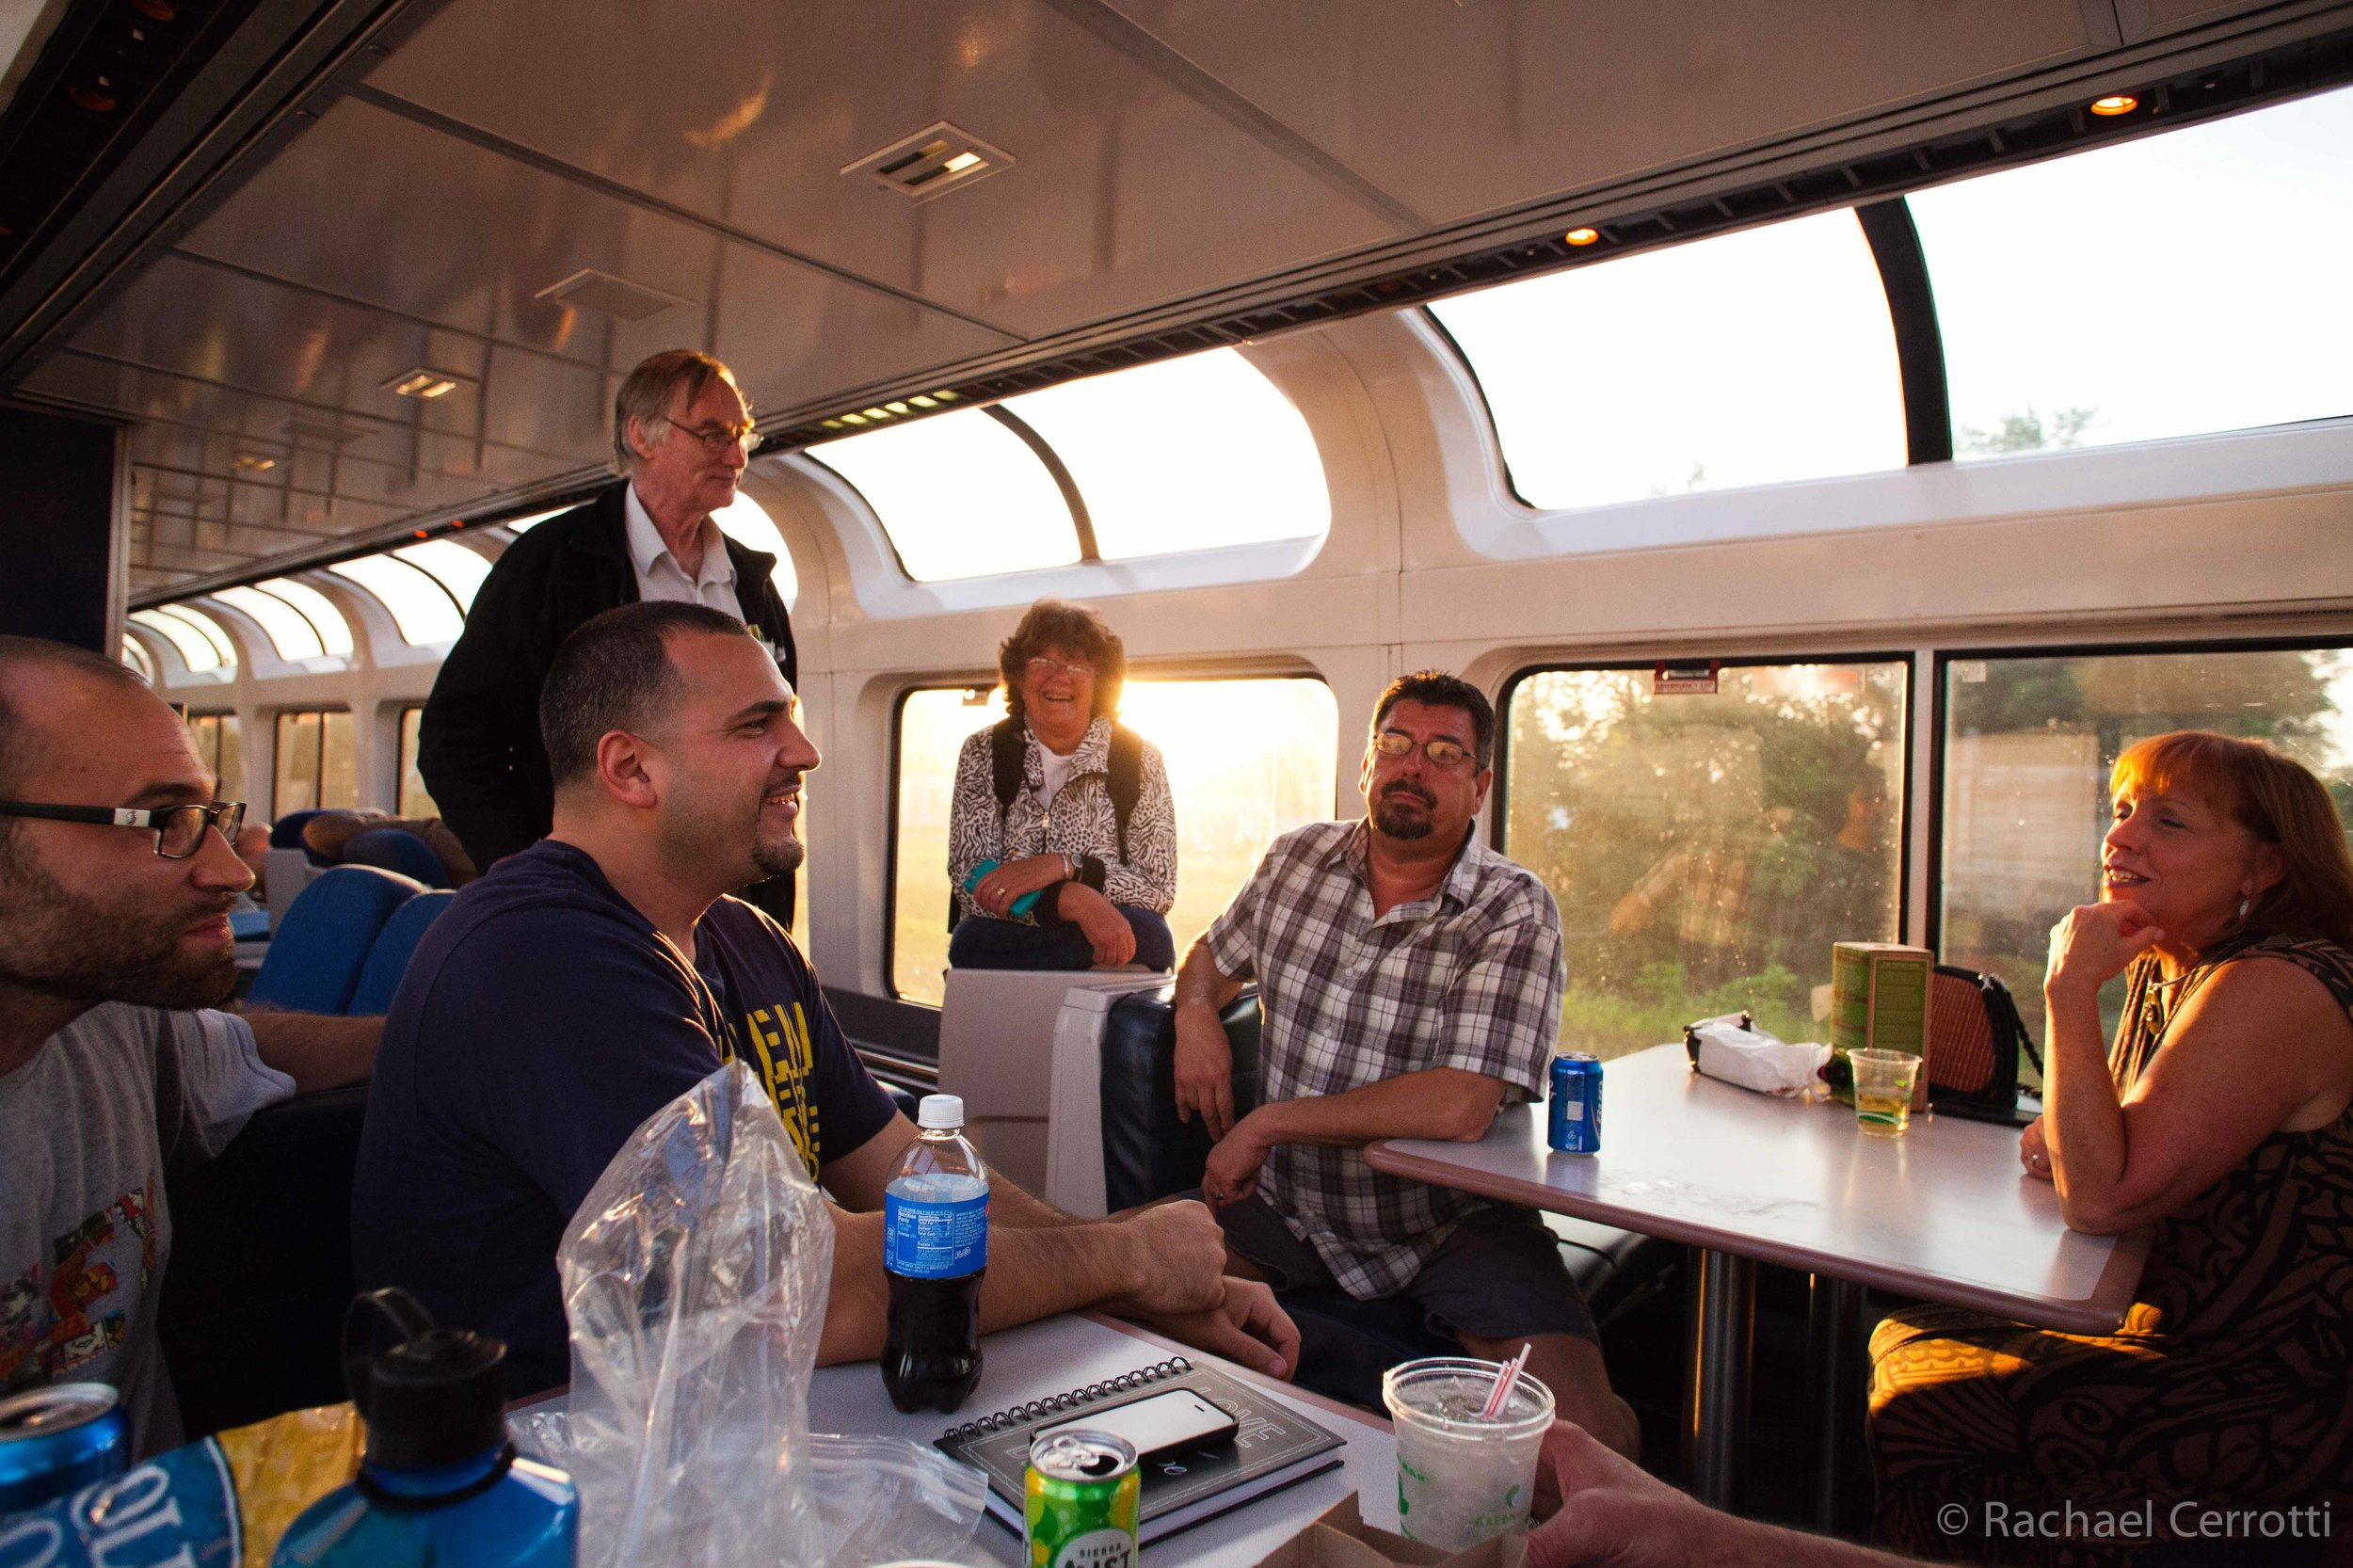 As the sun set, conversation continued in the lounge car on Amtrak's California Zephyr.